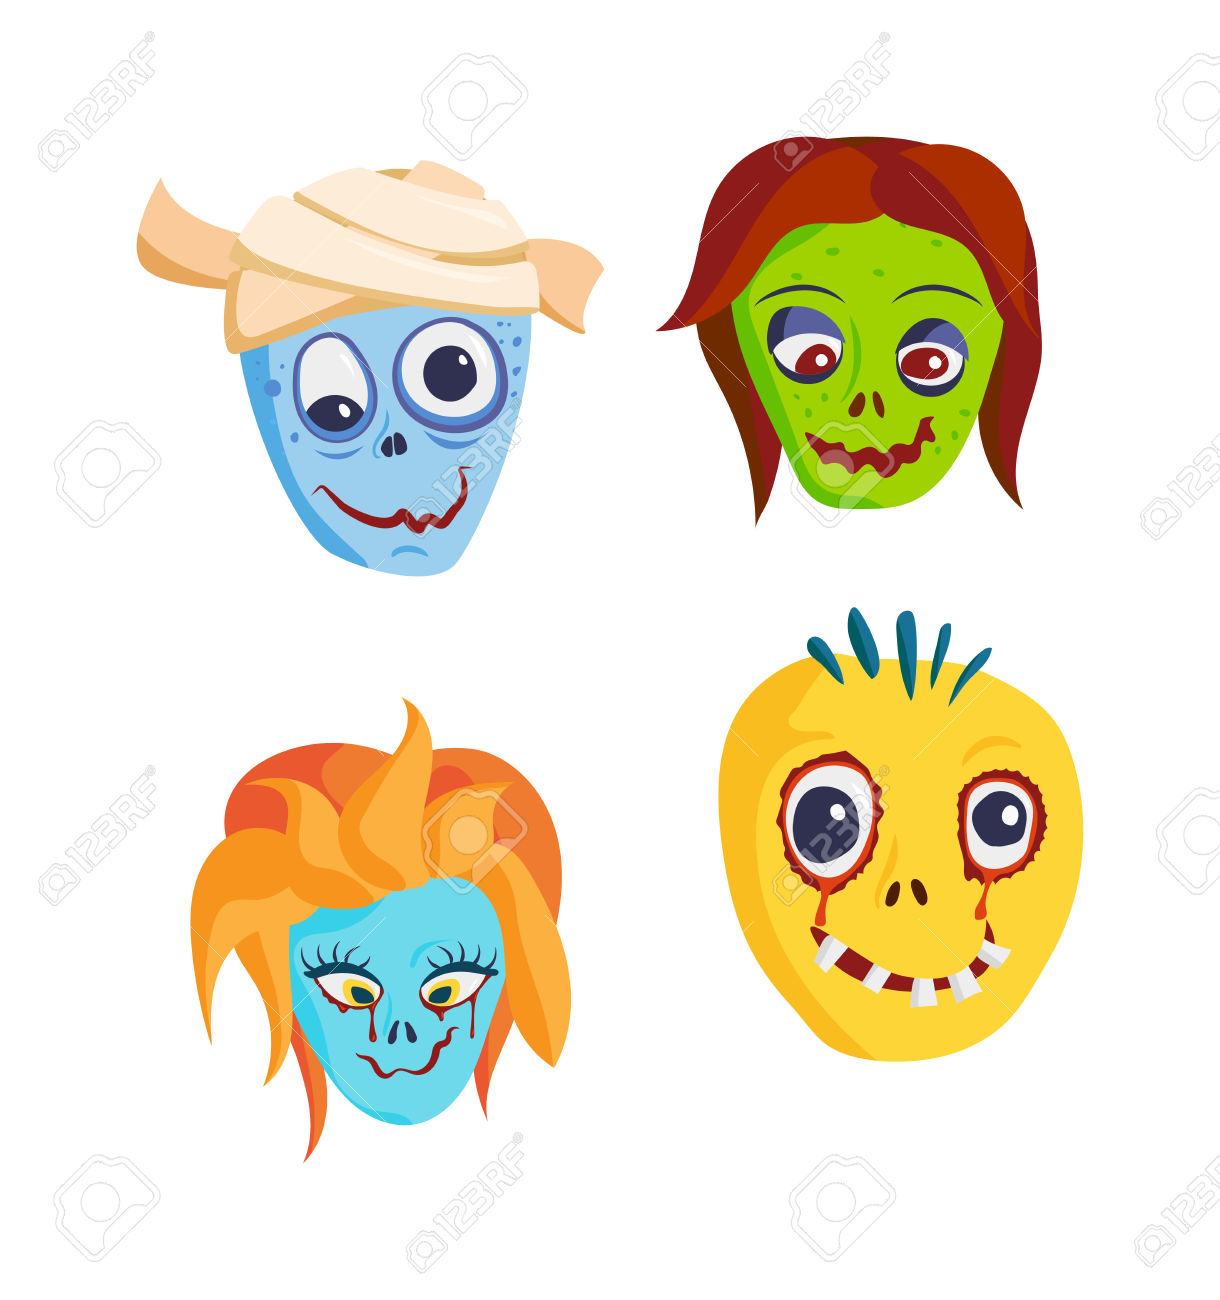 Clipart kids character heads banner royalty free Clipart kids character heads - ClipartFest banner royalty free